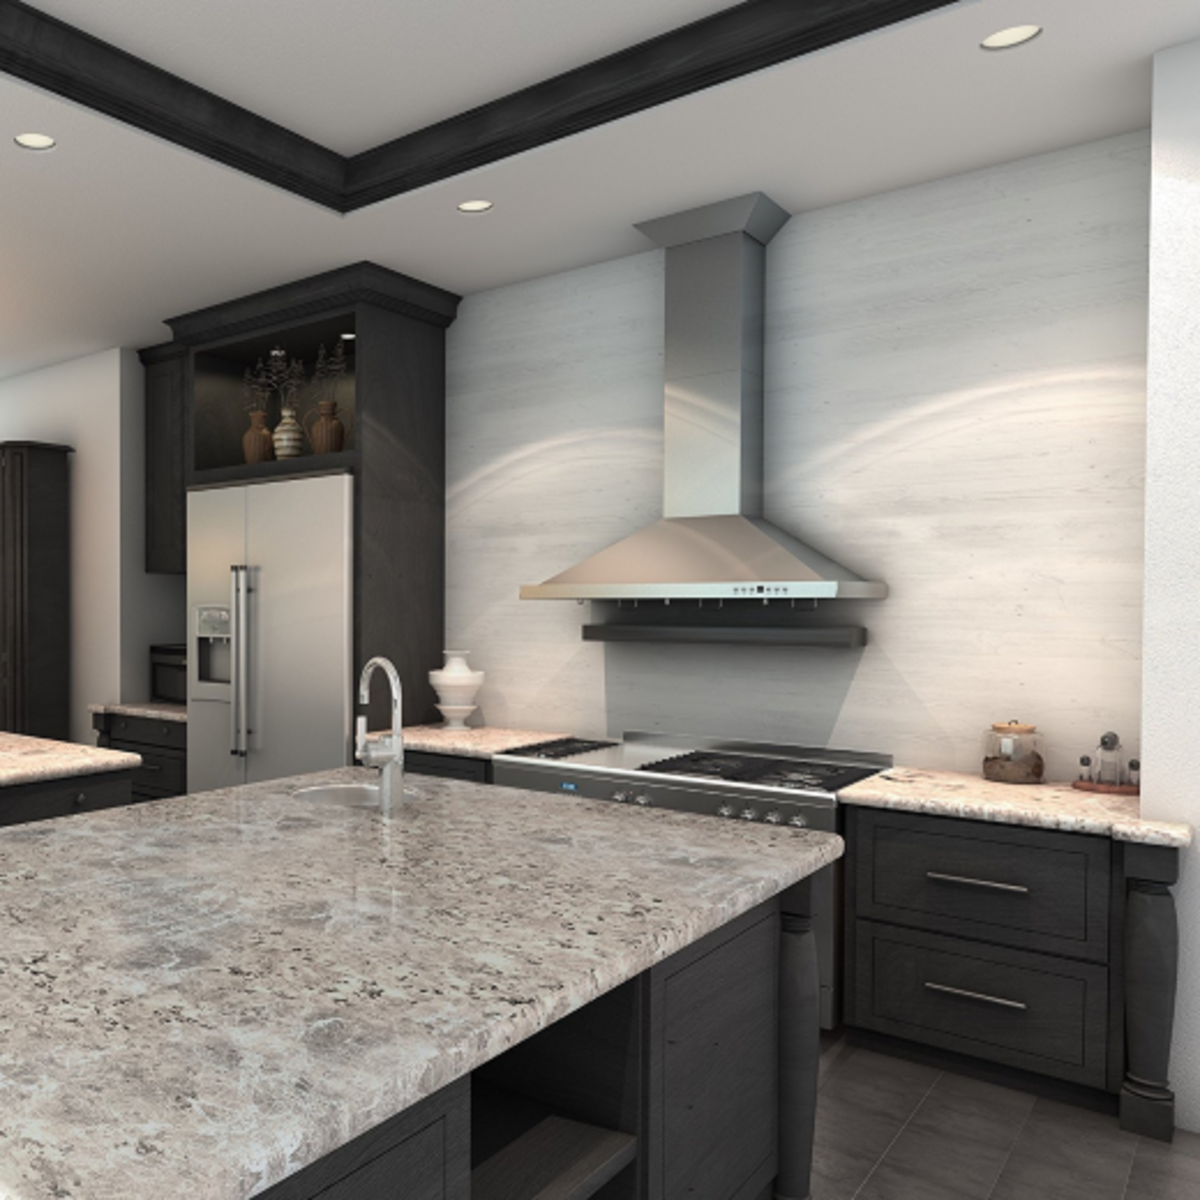 The range hood is the focal point of this kitchen.